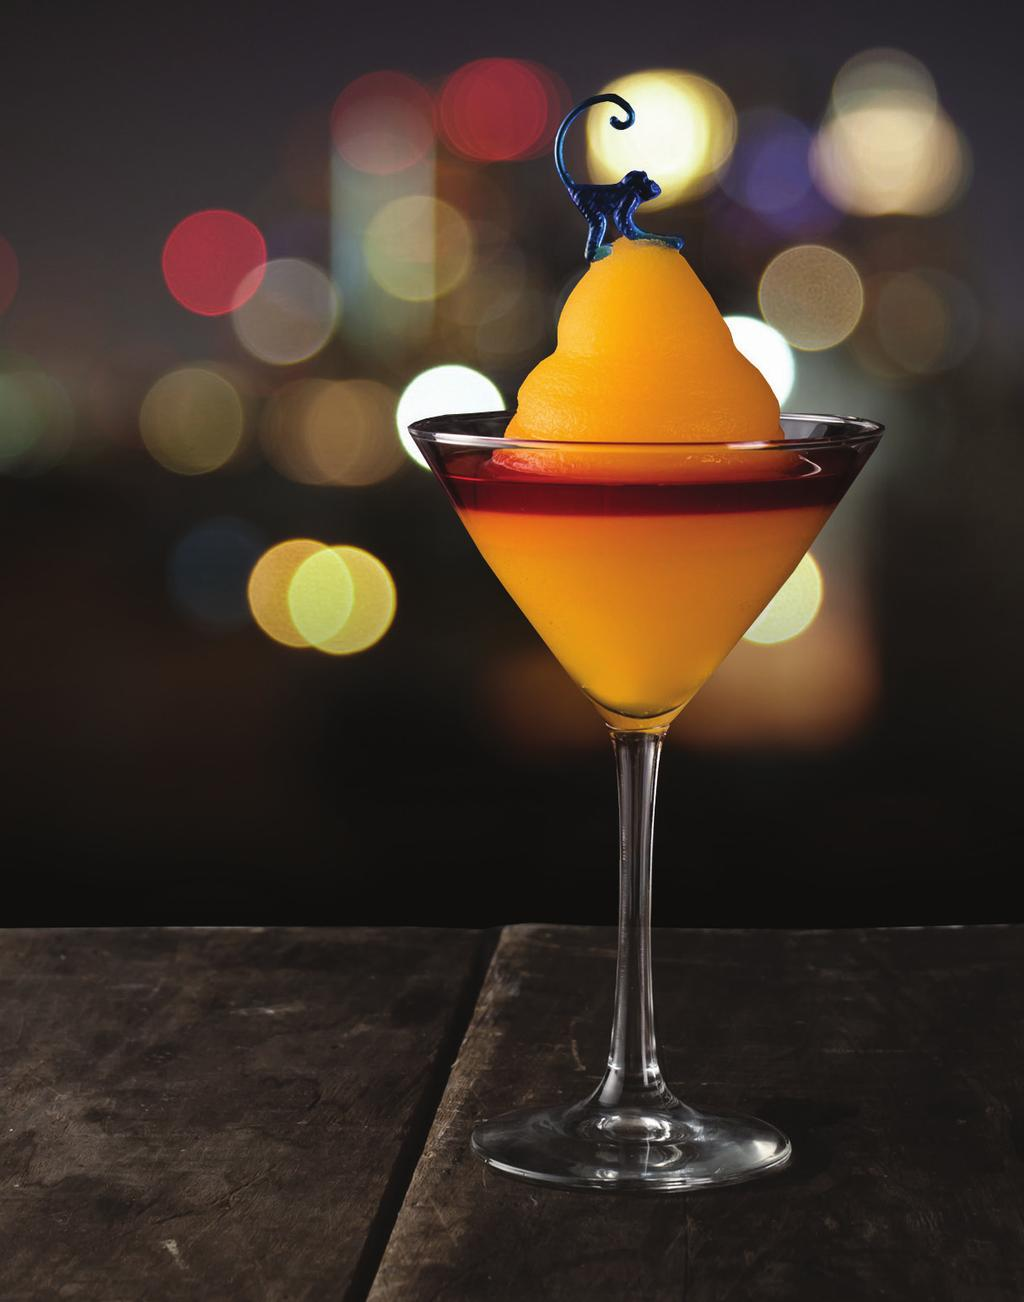 The Bellini was invented in 1934 by Giuseppe Cipriani, founder of Harry s Bar in Venice, Italy.